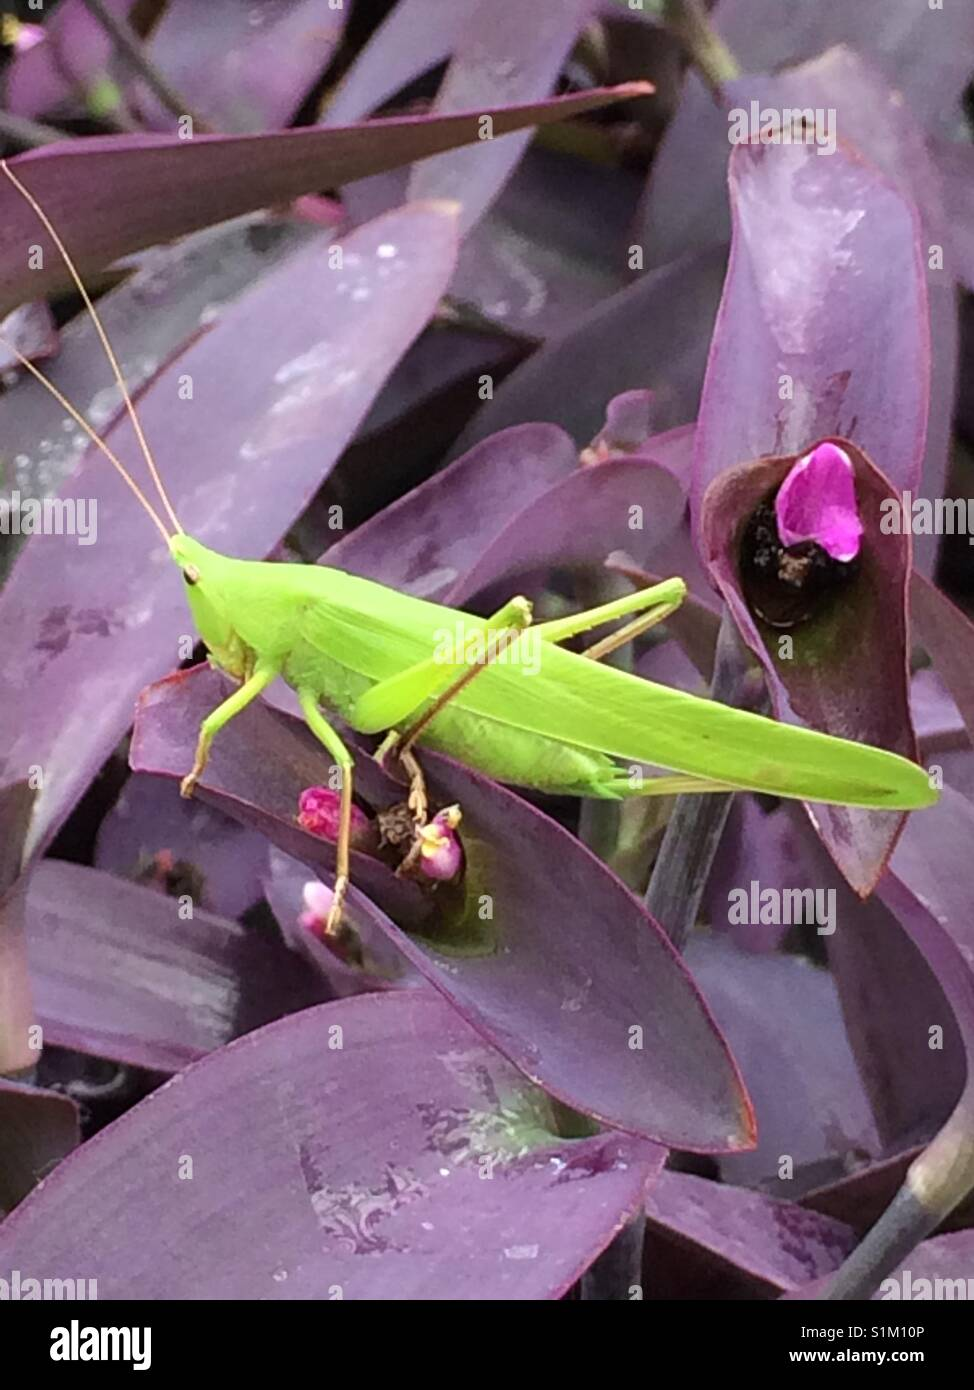 Katydid/Bush Cricket sitting on the Wandering Jew plant - Stock Image